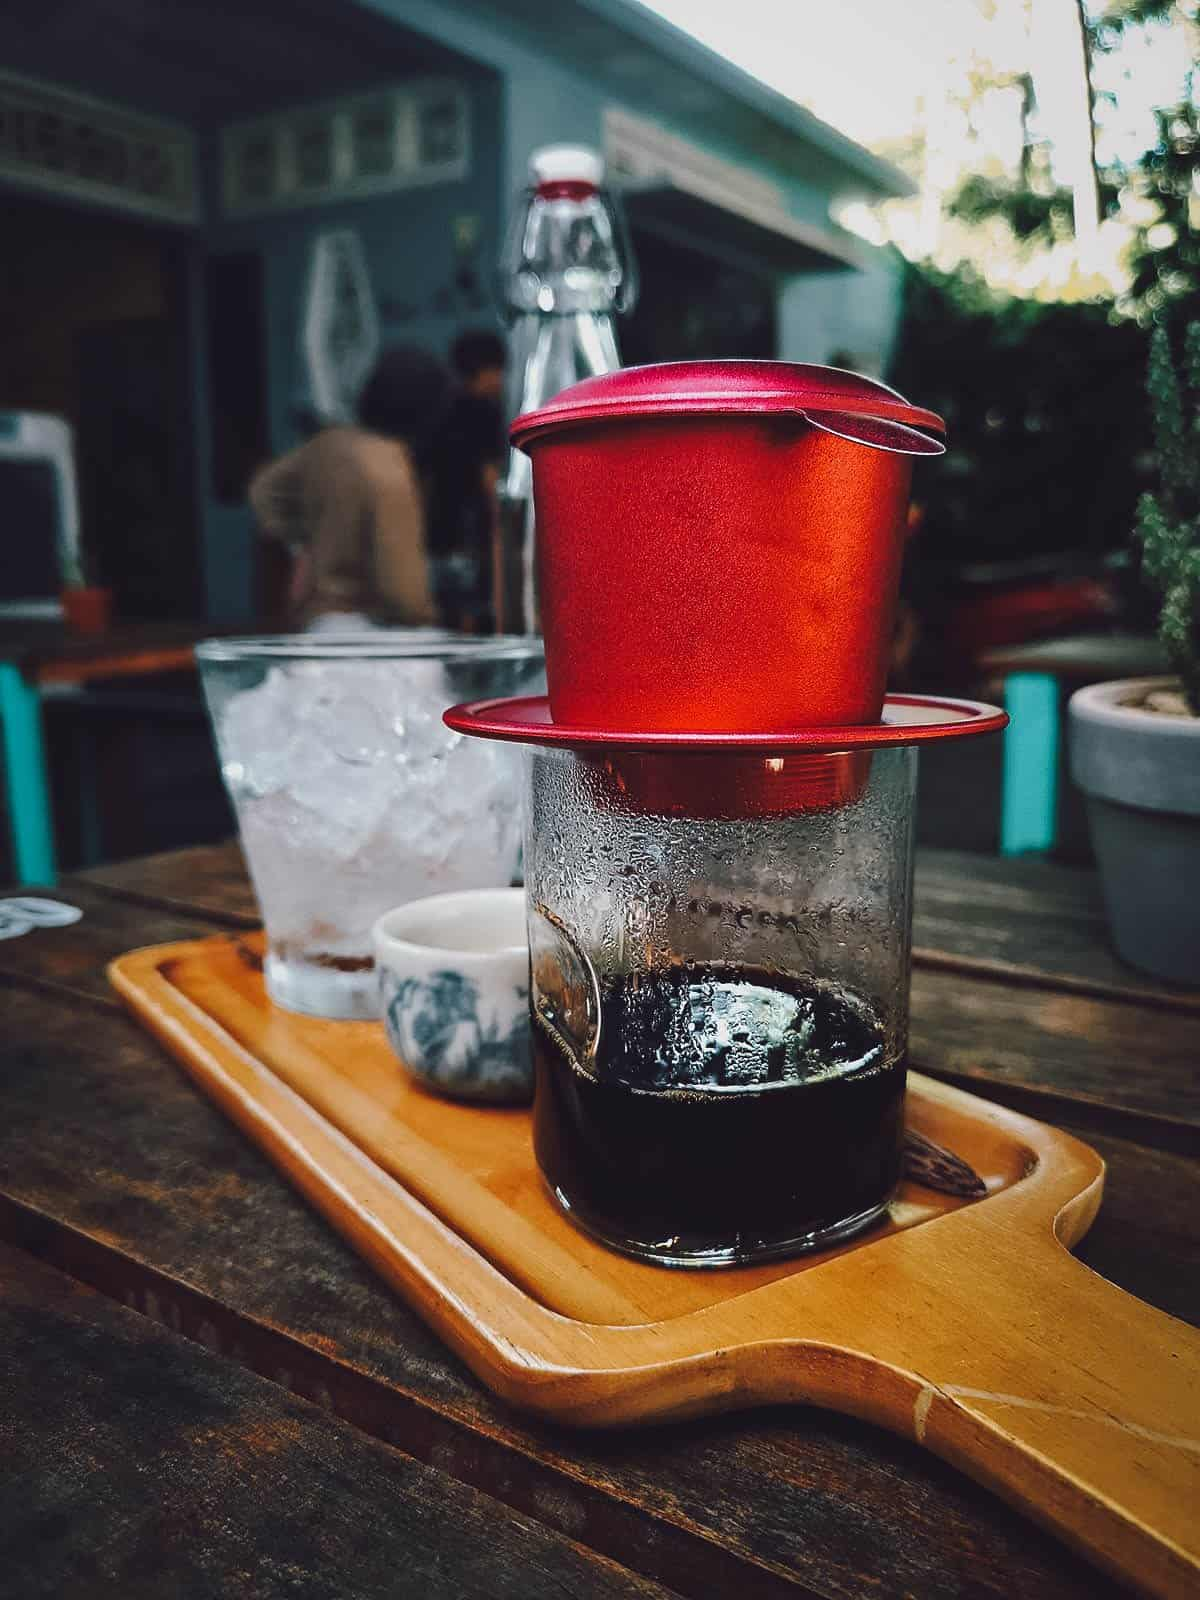 Drip coffee at Phin Coffee in Hoi An, Vietnam